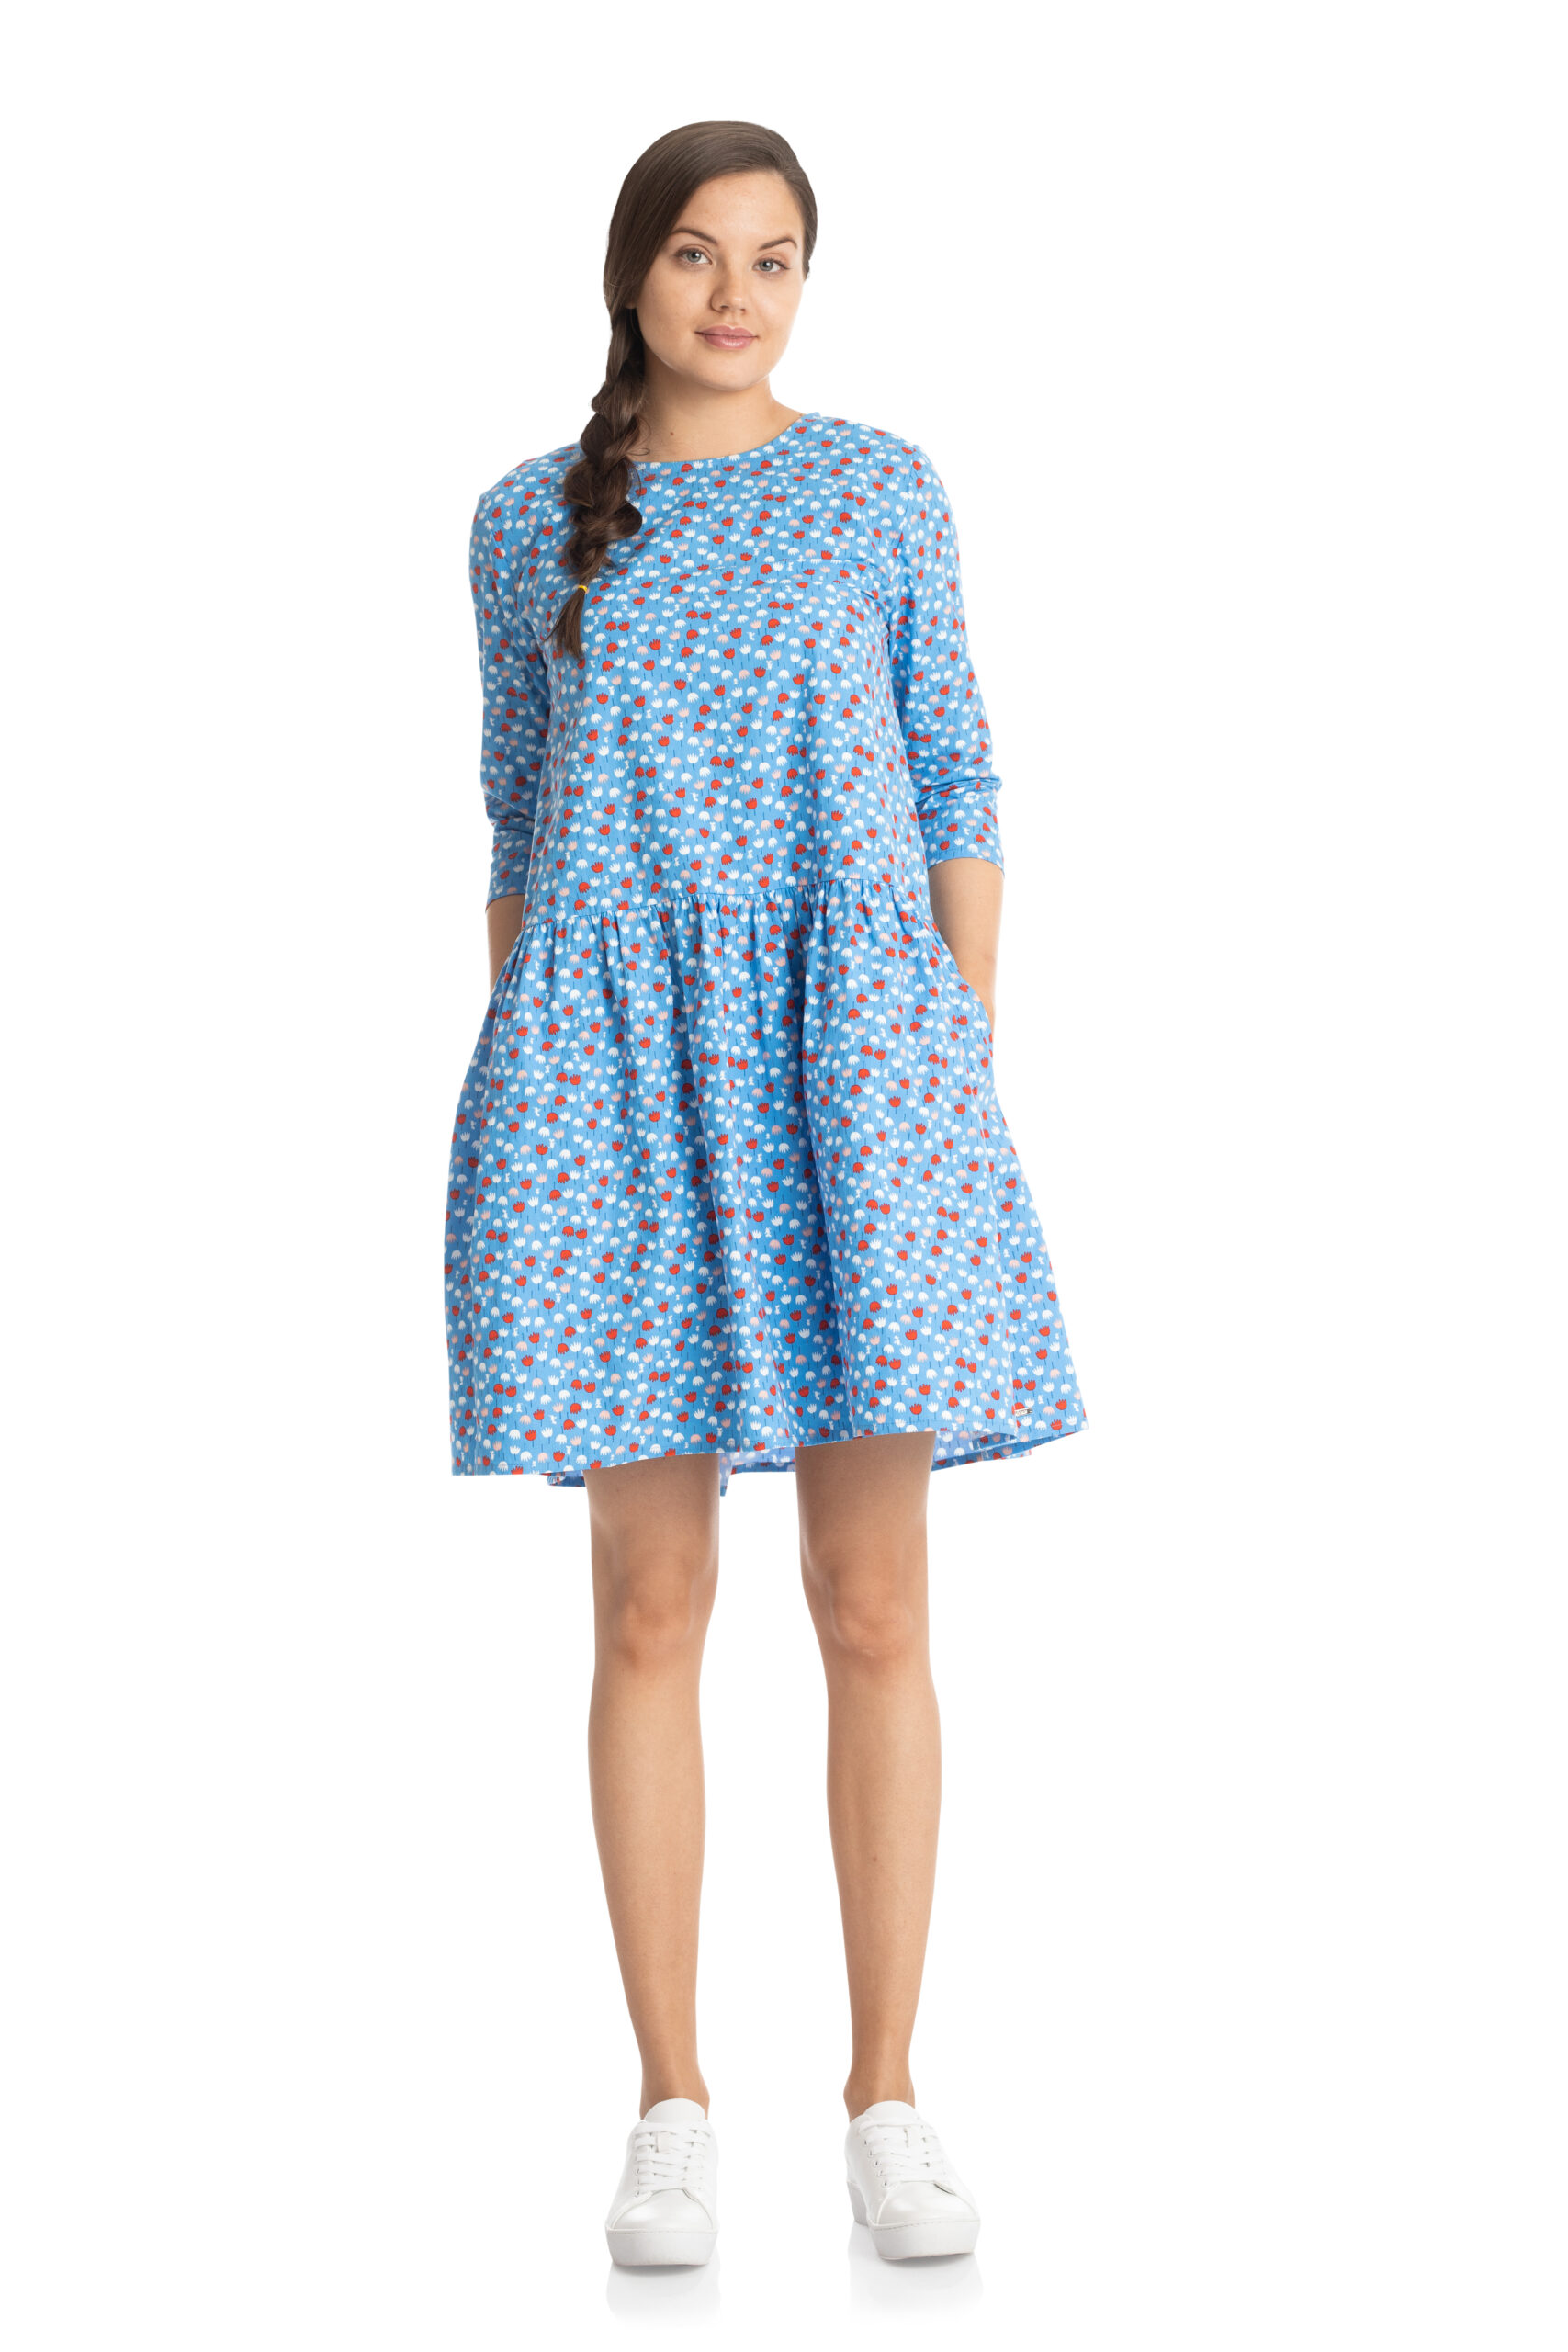 Martinex Moomin Elina Dress Miniflower Blue